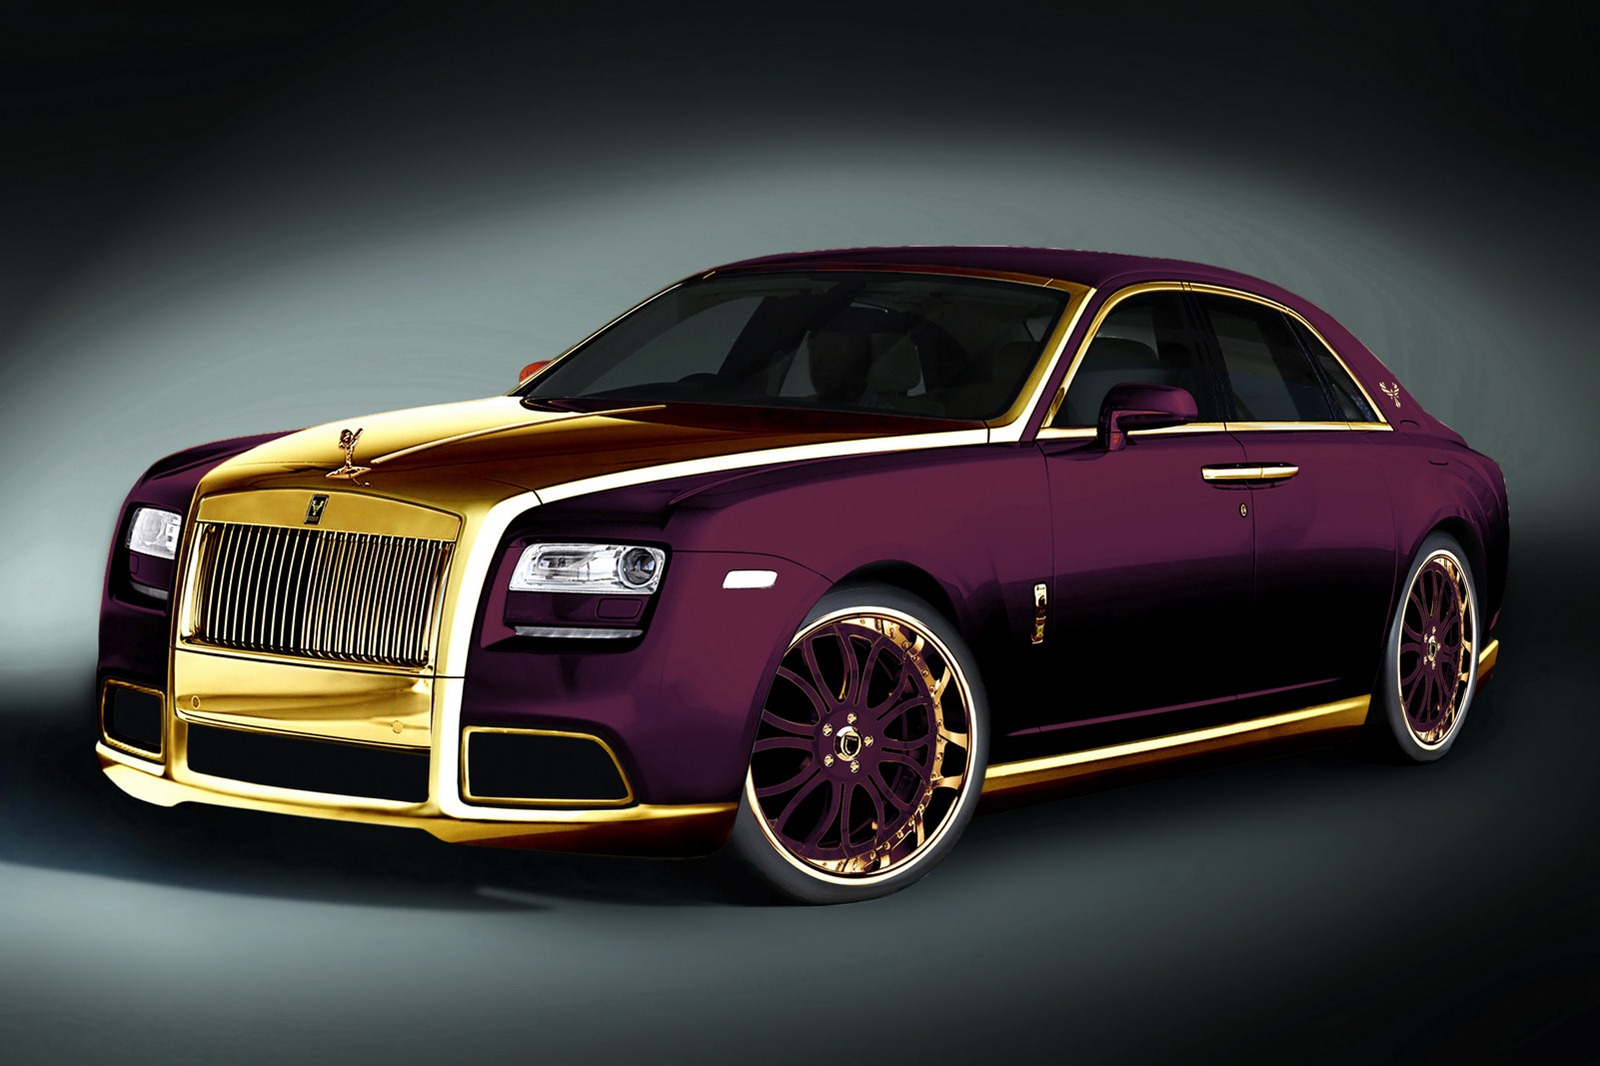 Rolls Royce Ghost Fenice Milano Purple and Gold Free Wallpaper Download